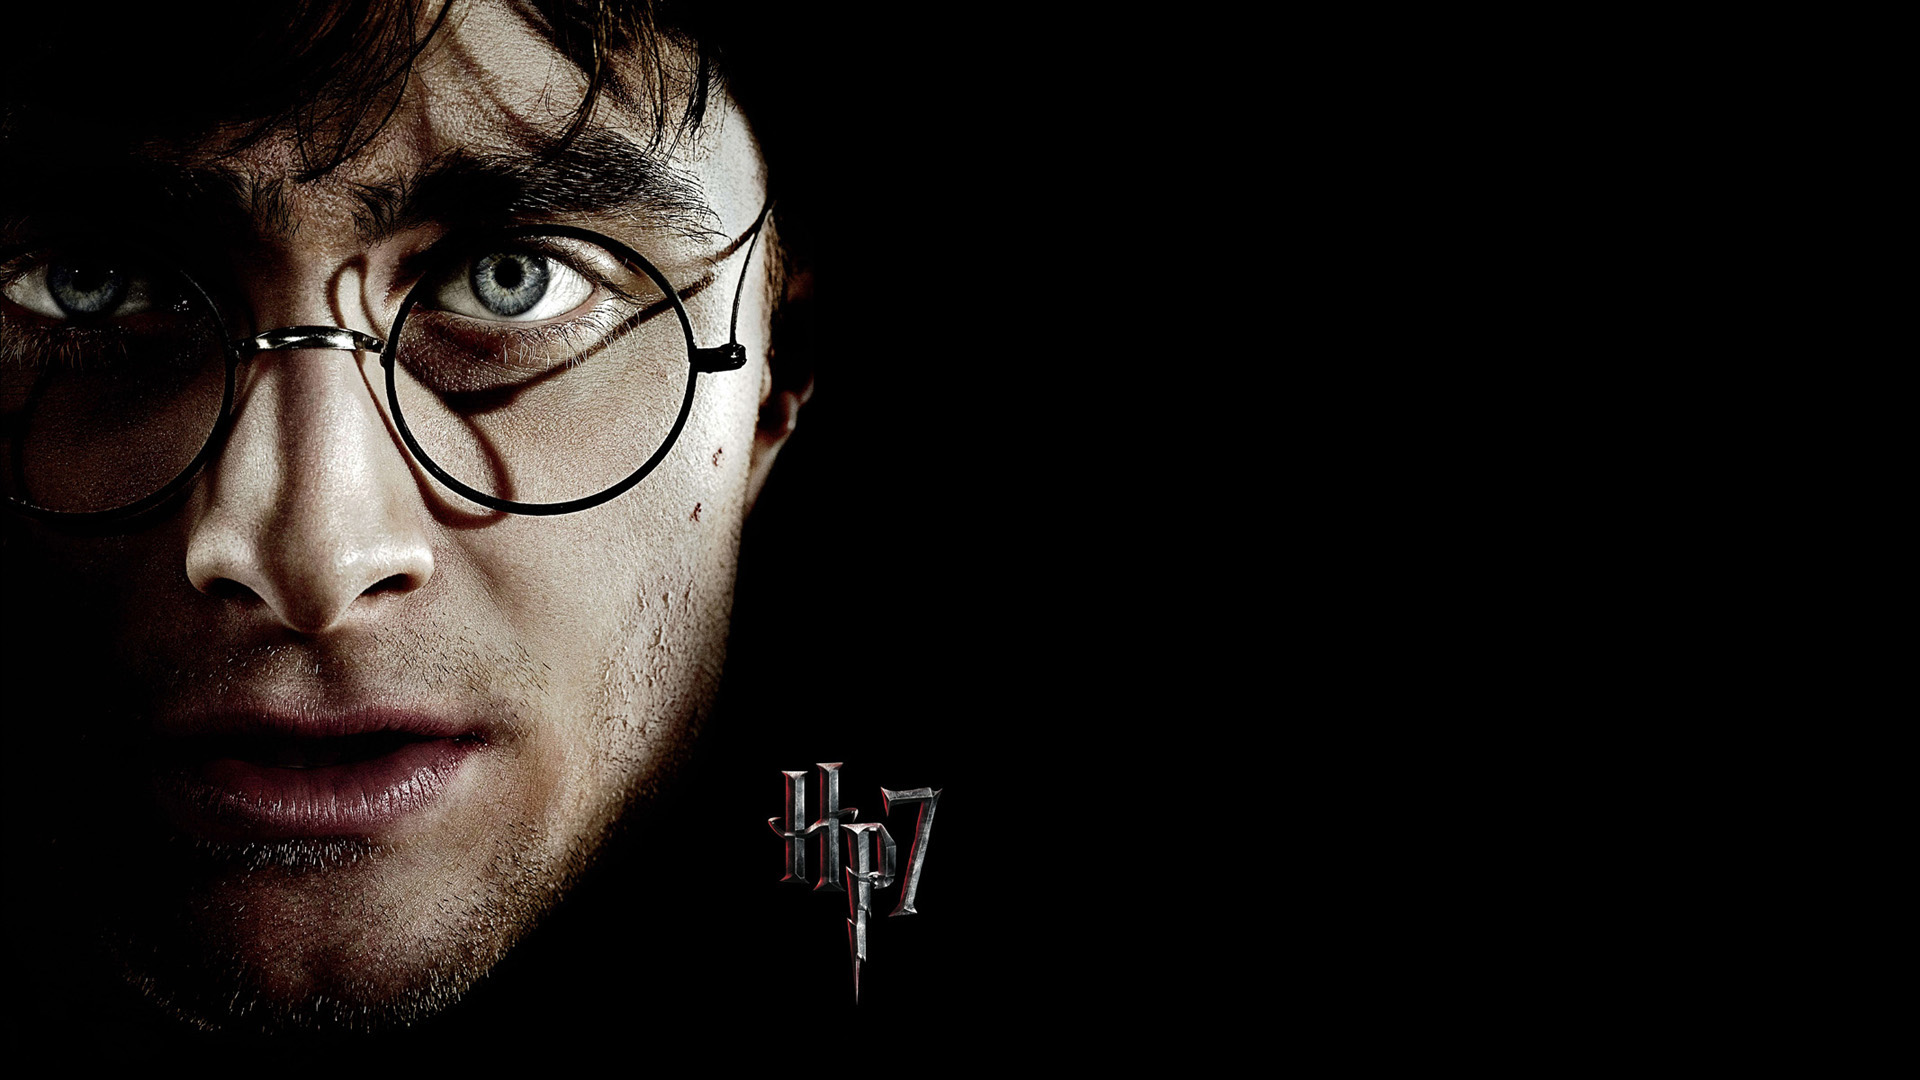 harry potter portrait hp7 1920×1080 – Digital Citizen